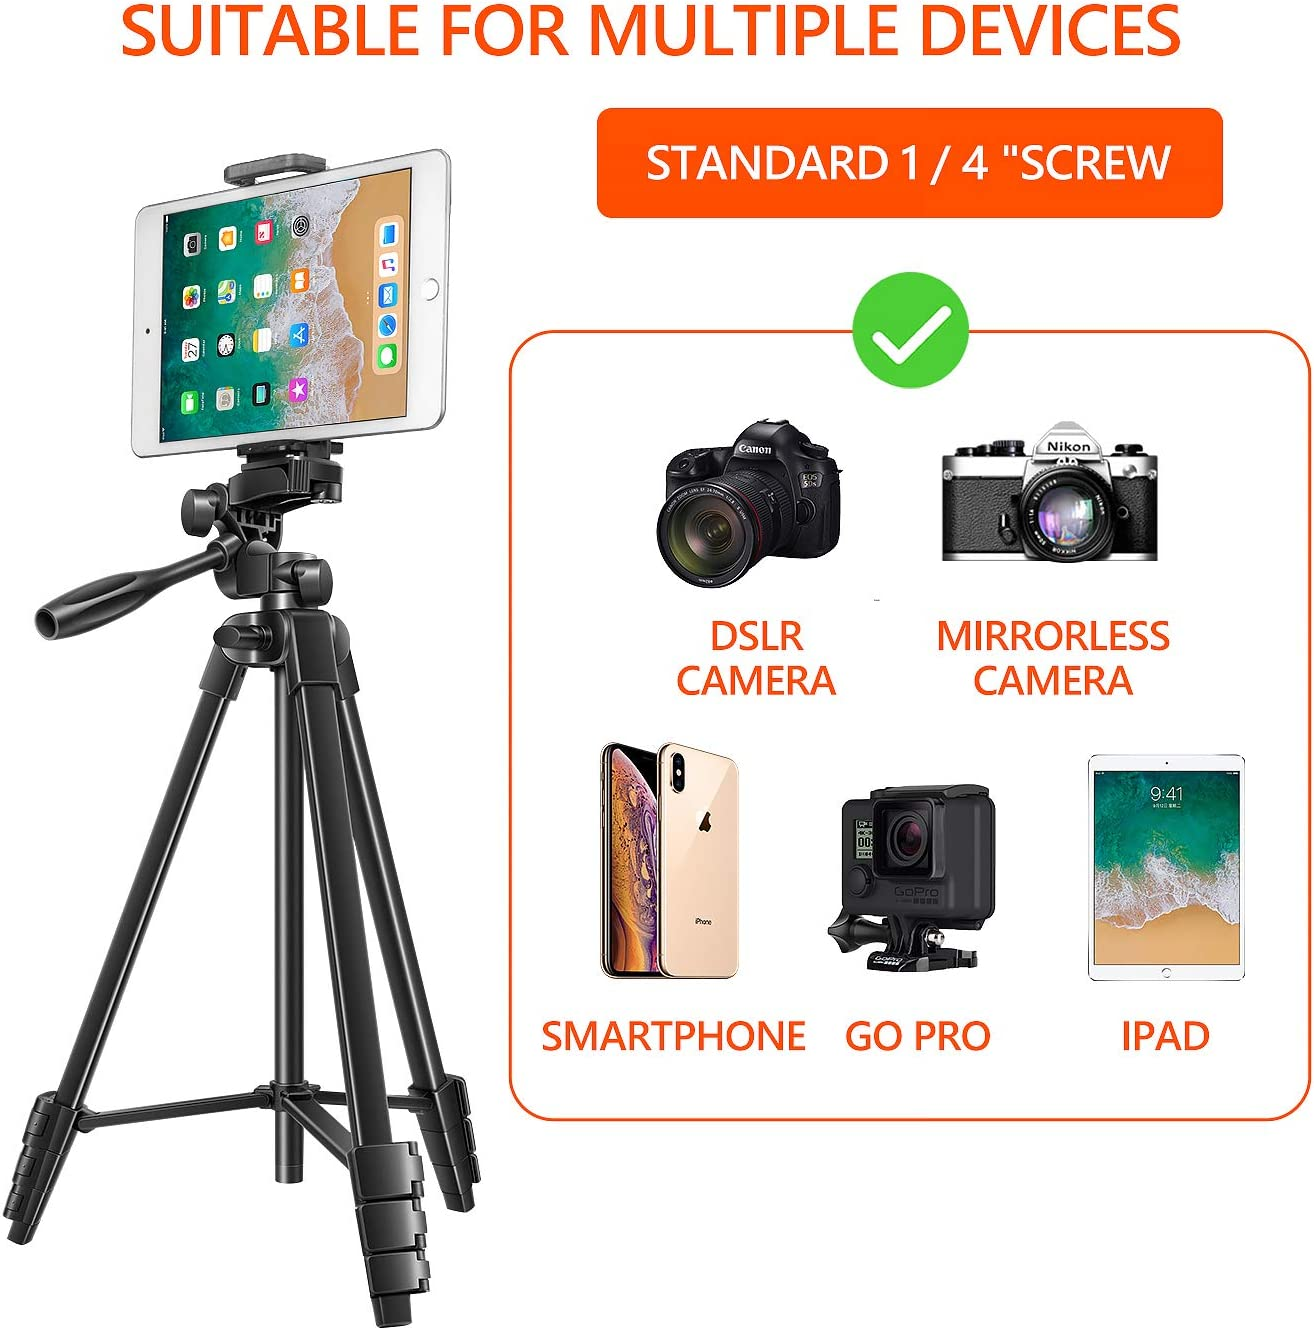 Tripod for Camera, 55 Inch Lightweight Tripod for Phone with 2 in 1 Holder for Tablet and Cellphone Aluminum Alloy 3-Way Head Tripod for DLSR Camera with Carrying Bag and Bluetooth Remote Control : Camera & Photo